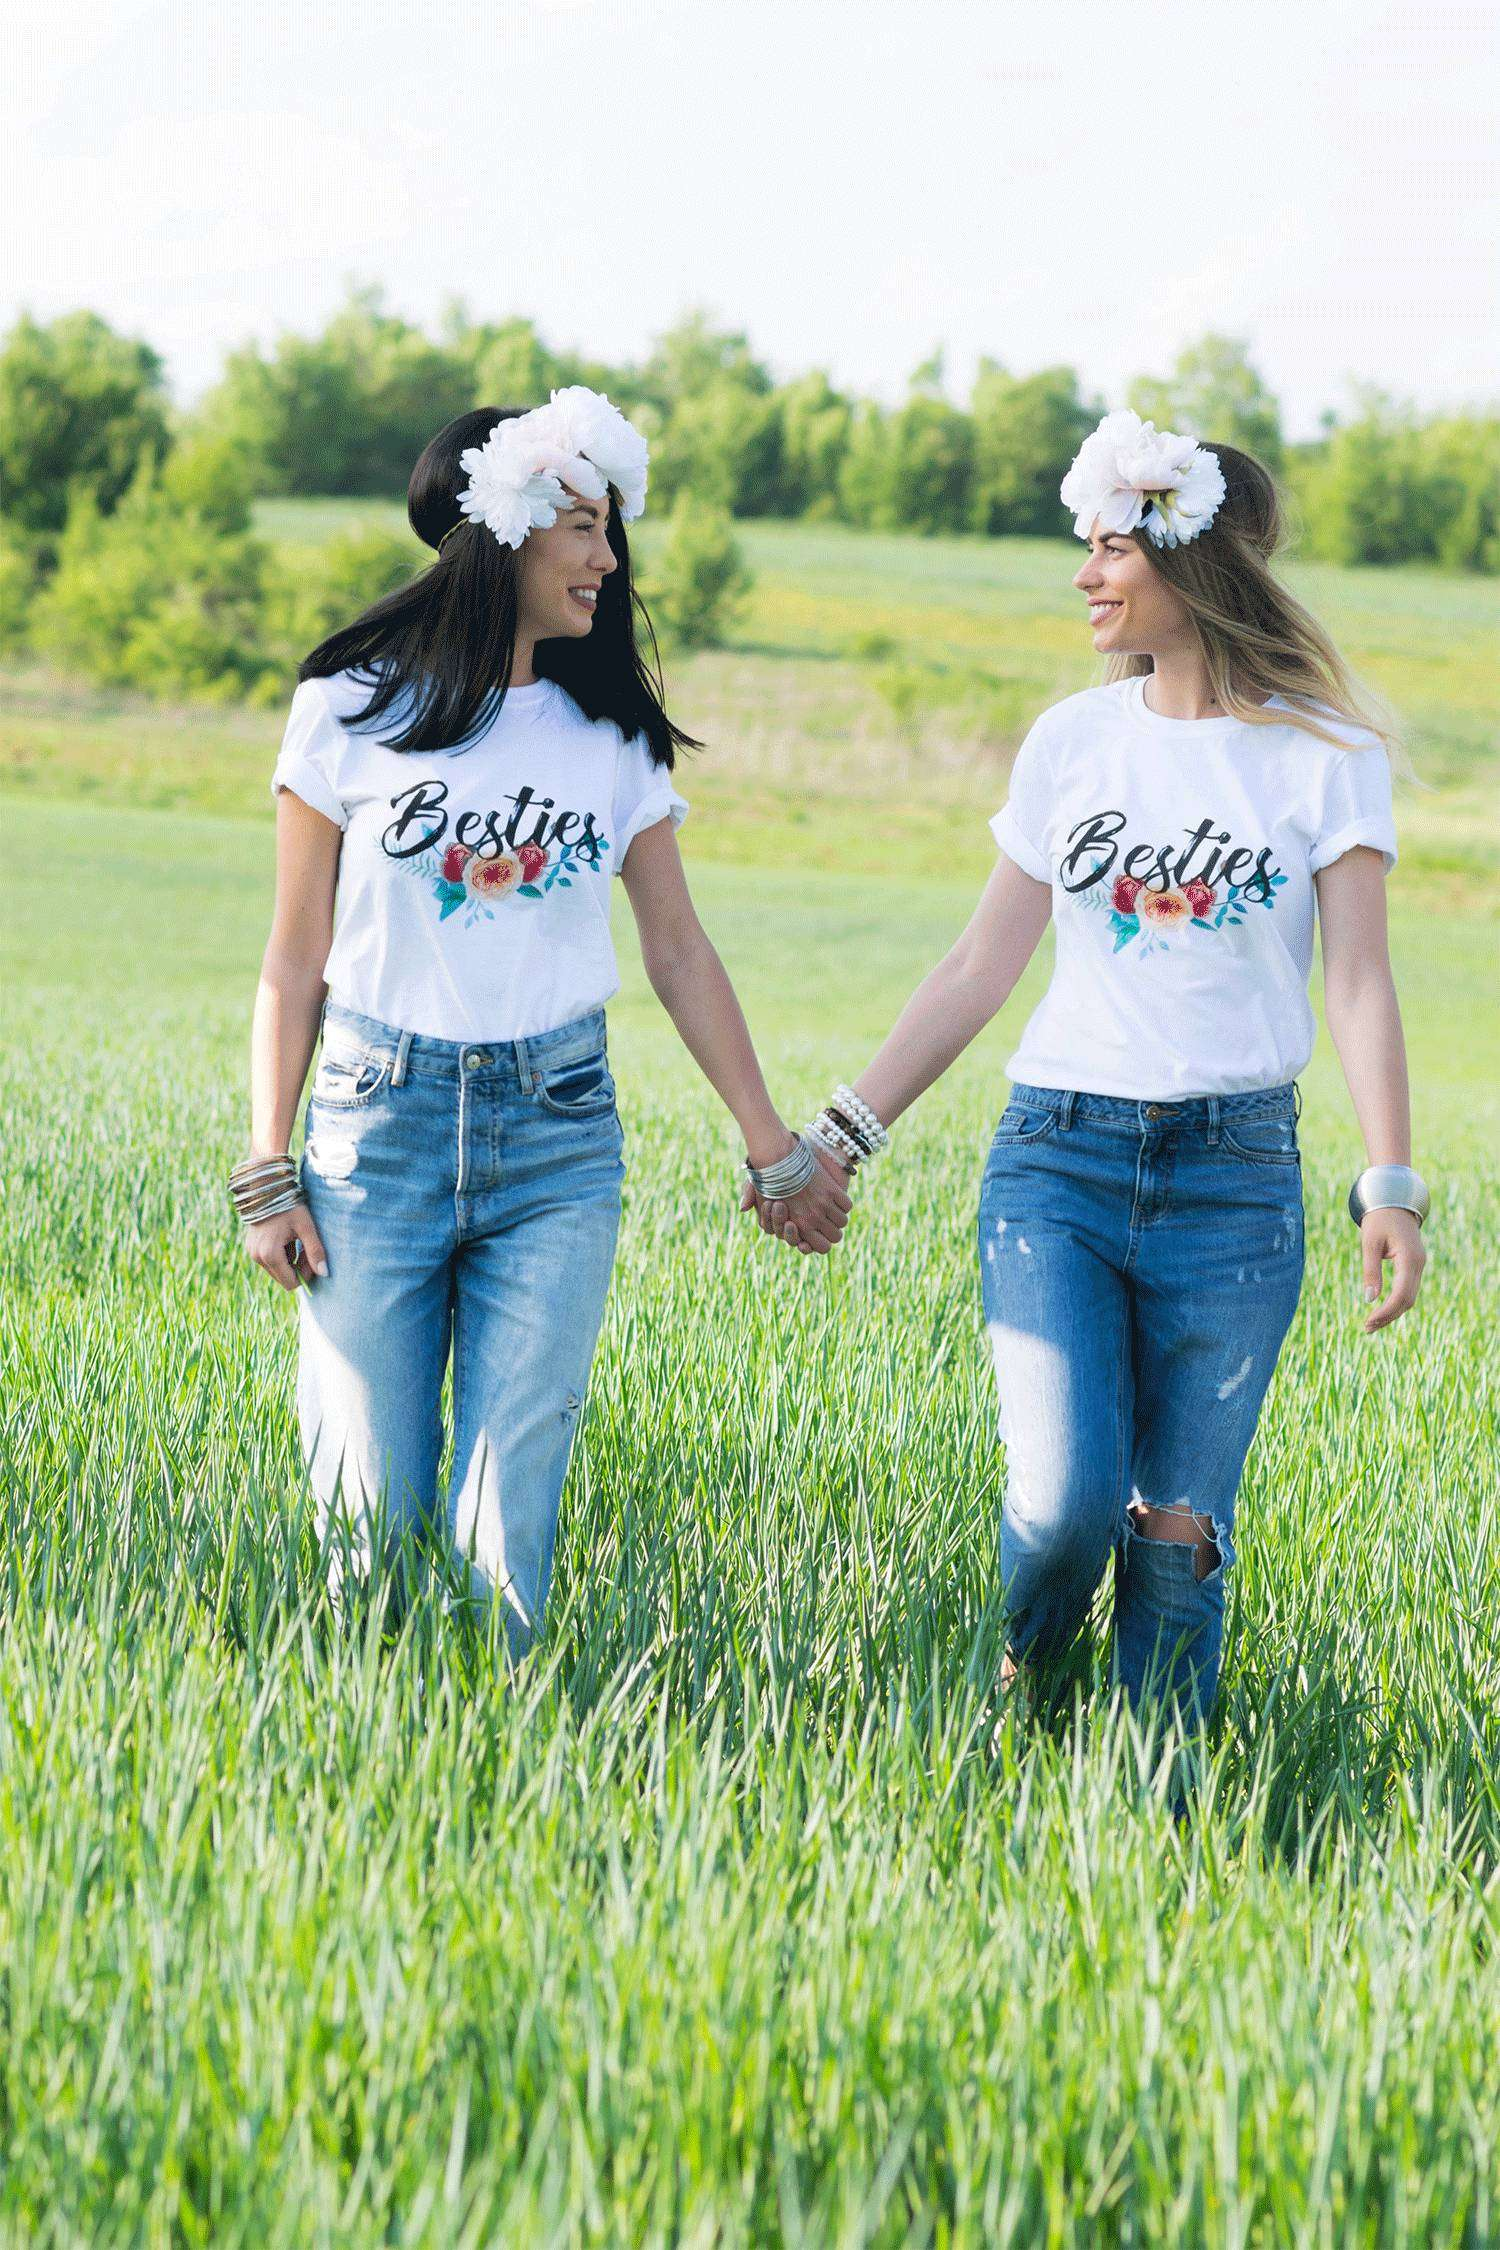 lookbook-3_0000_epic-tees-besties-light-retouch-0022